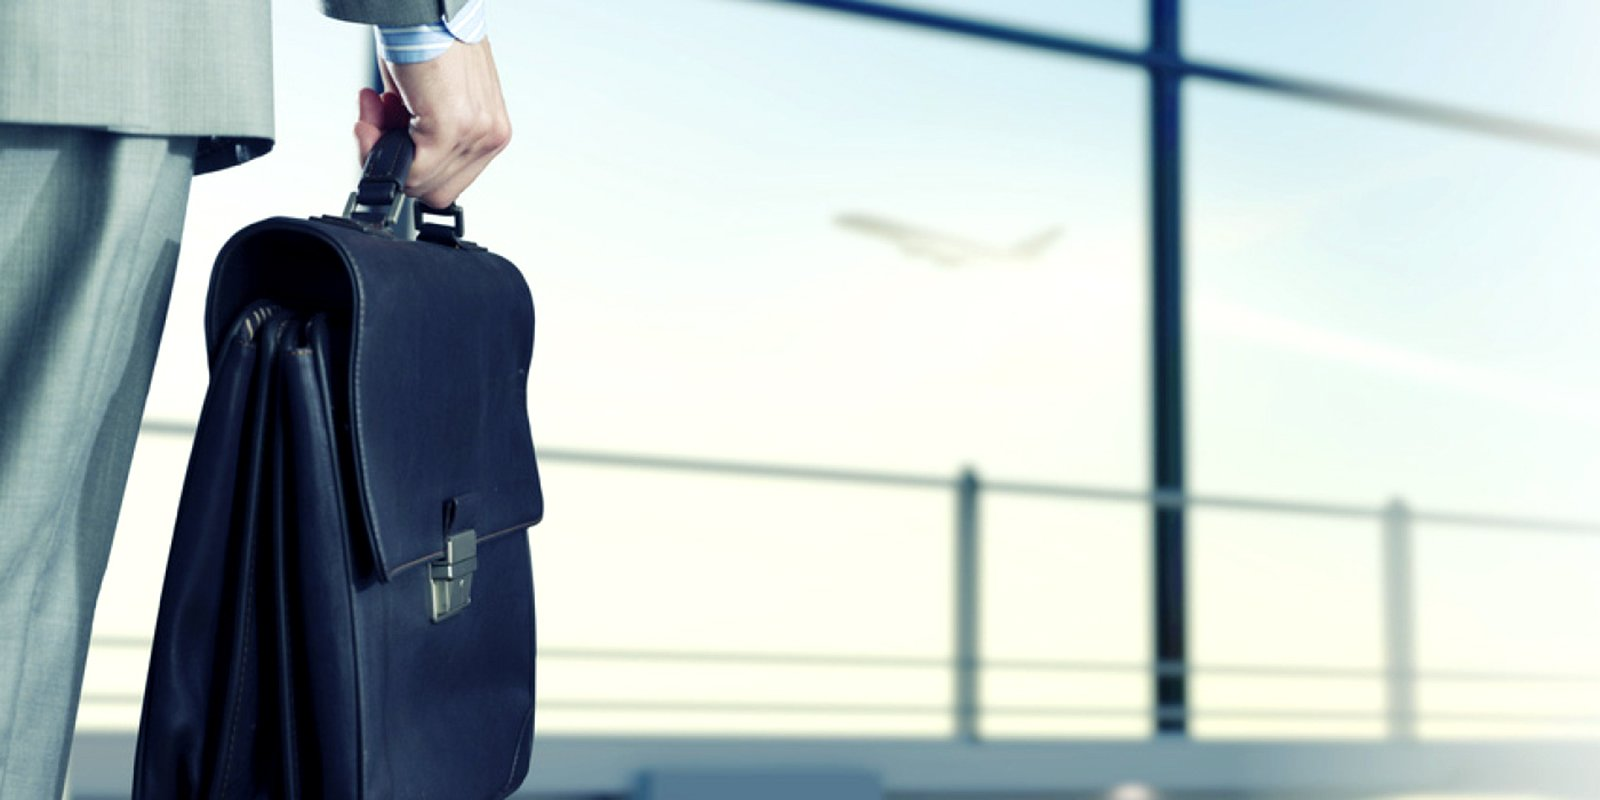 business travel improvement Build repeat business for your travel agency by understanding your clients' vacation travel preferences survey them to discover their favorite destinations and how important safety, cost and distance are when they consider vacation travel.